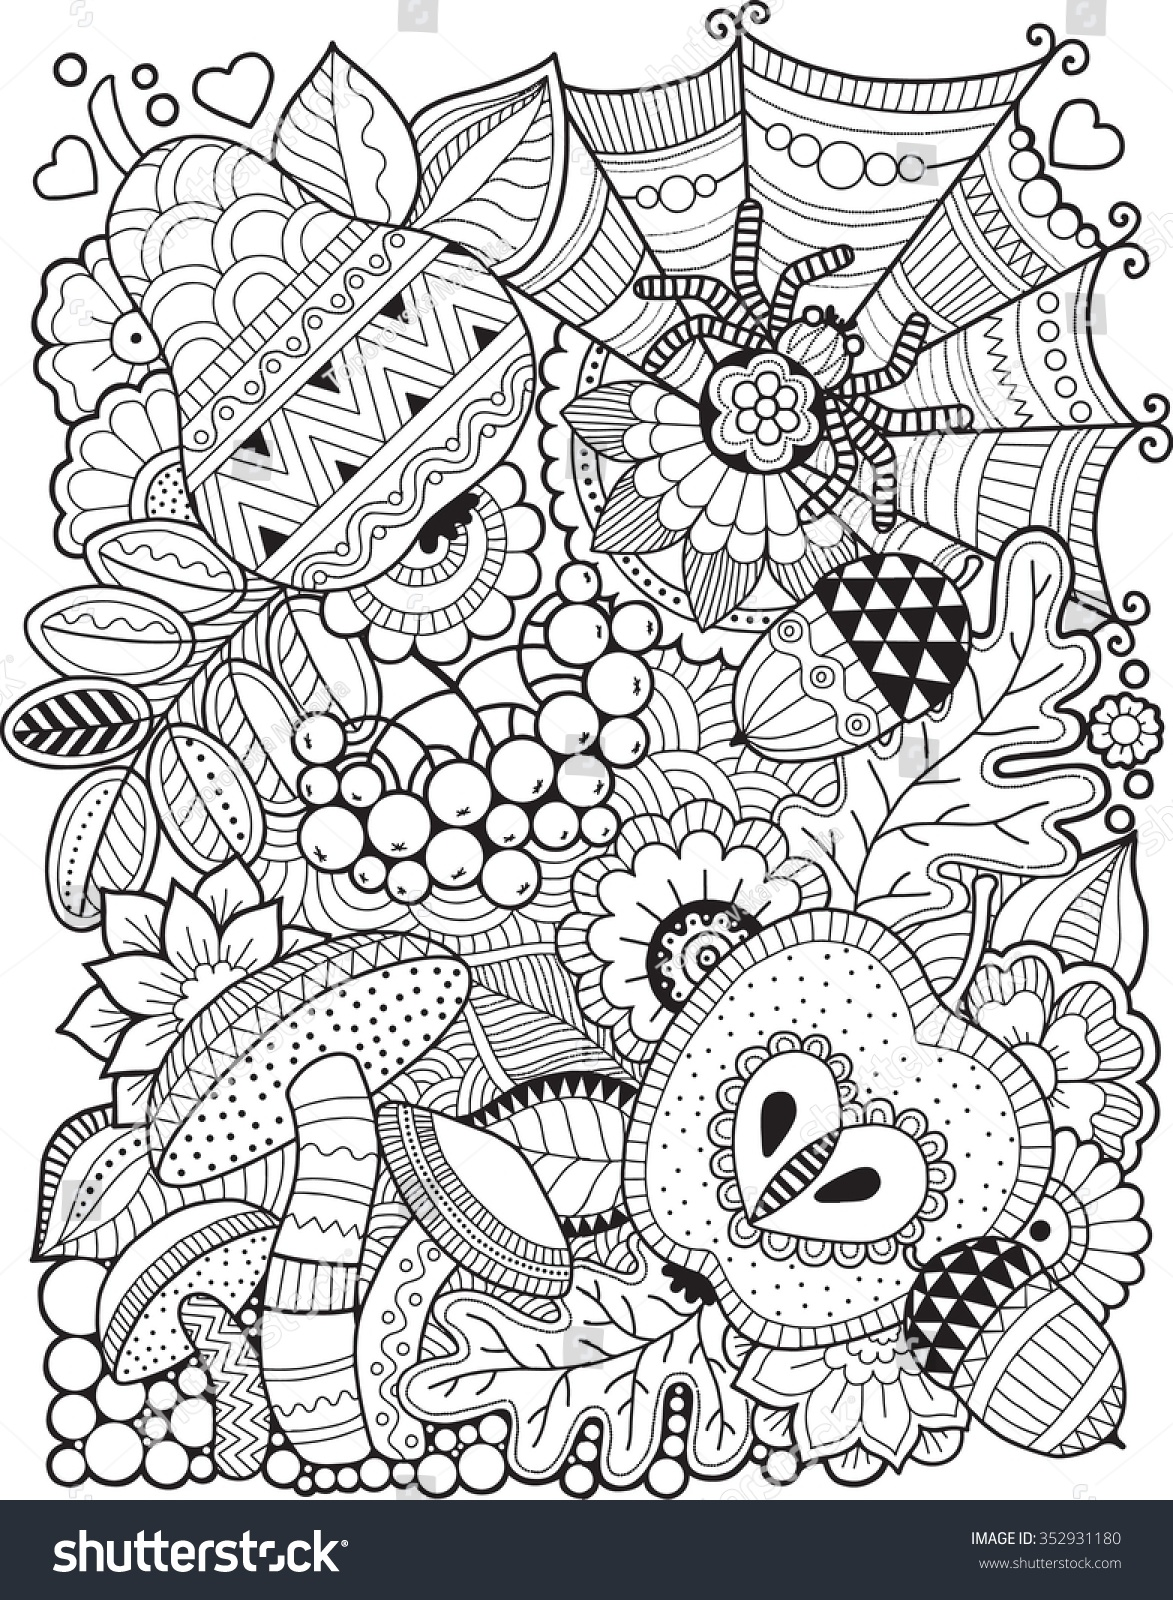 Hello Autumn Coloring Book For Adult Stock Vector